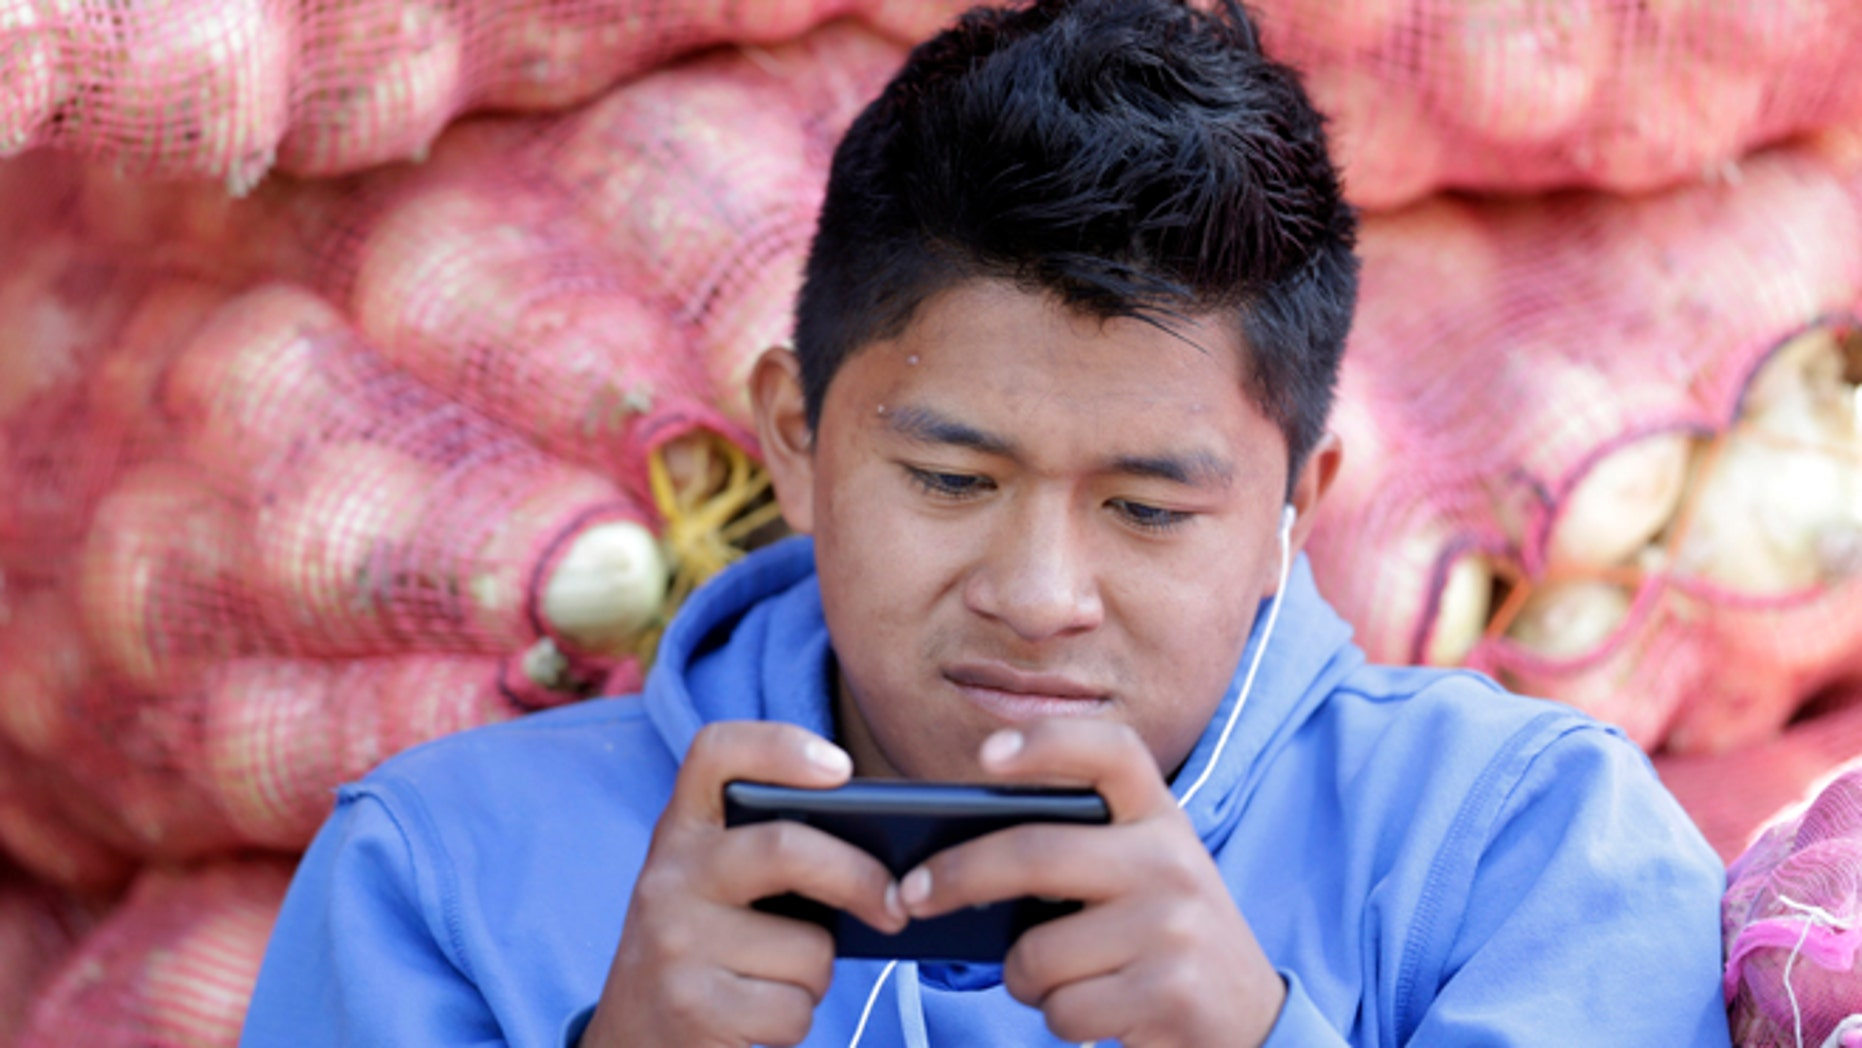 In this Aug. 24, 2014, photo, a young man texts a message on his mobile phone while working at the Mayorista Market in Quito, Ecuador. Ecuador's Central Bank is getting ready to use electronic currency in which consumers will initially be able to use it to make and receive payments using their cellphones. Ecuador is heralding its plans to create the worlds first government-issued digital currency, which some analysts believe could ultimately replace the countrys existing currency, the U.S. dollar, which the government cannot control.  (AP Photo/Dolores Ochoa)